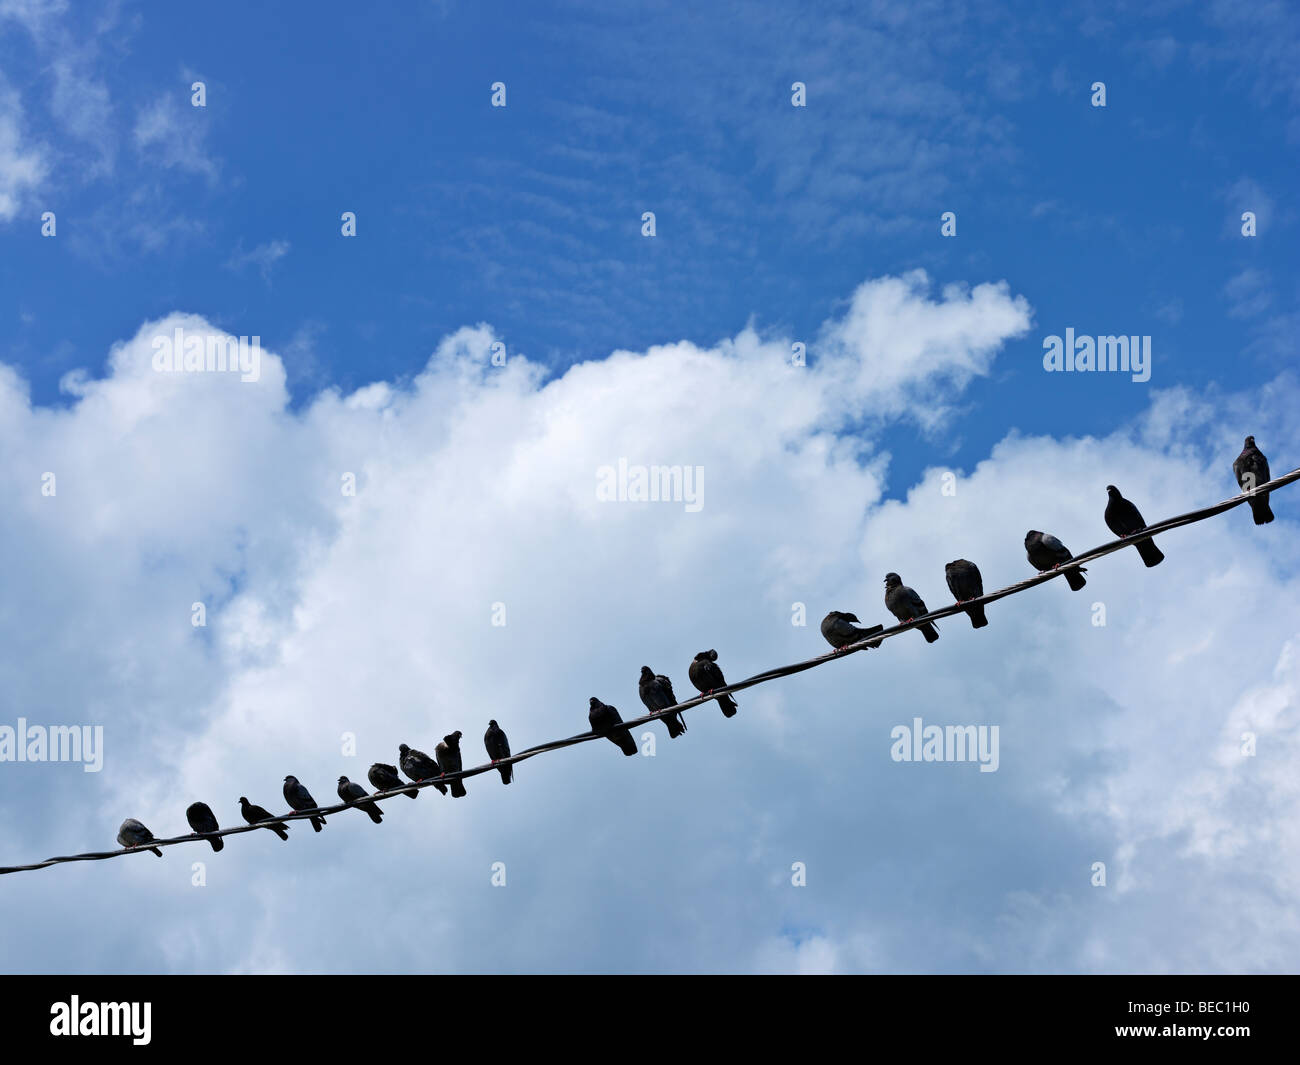 row of birds on a wire against a blue sky and white clouds - Stock Image